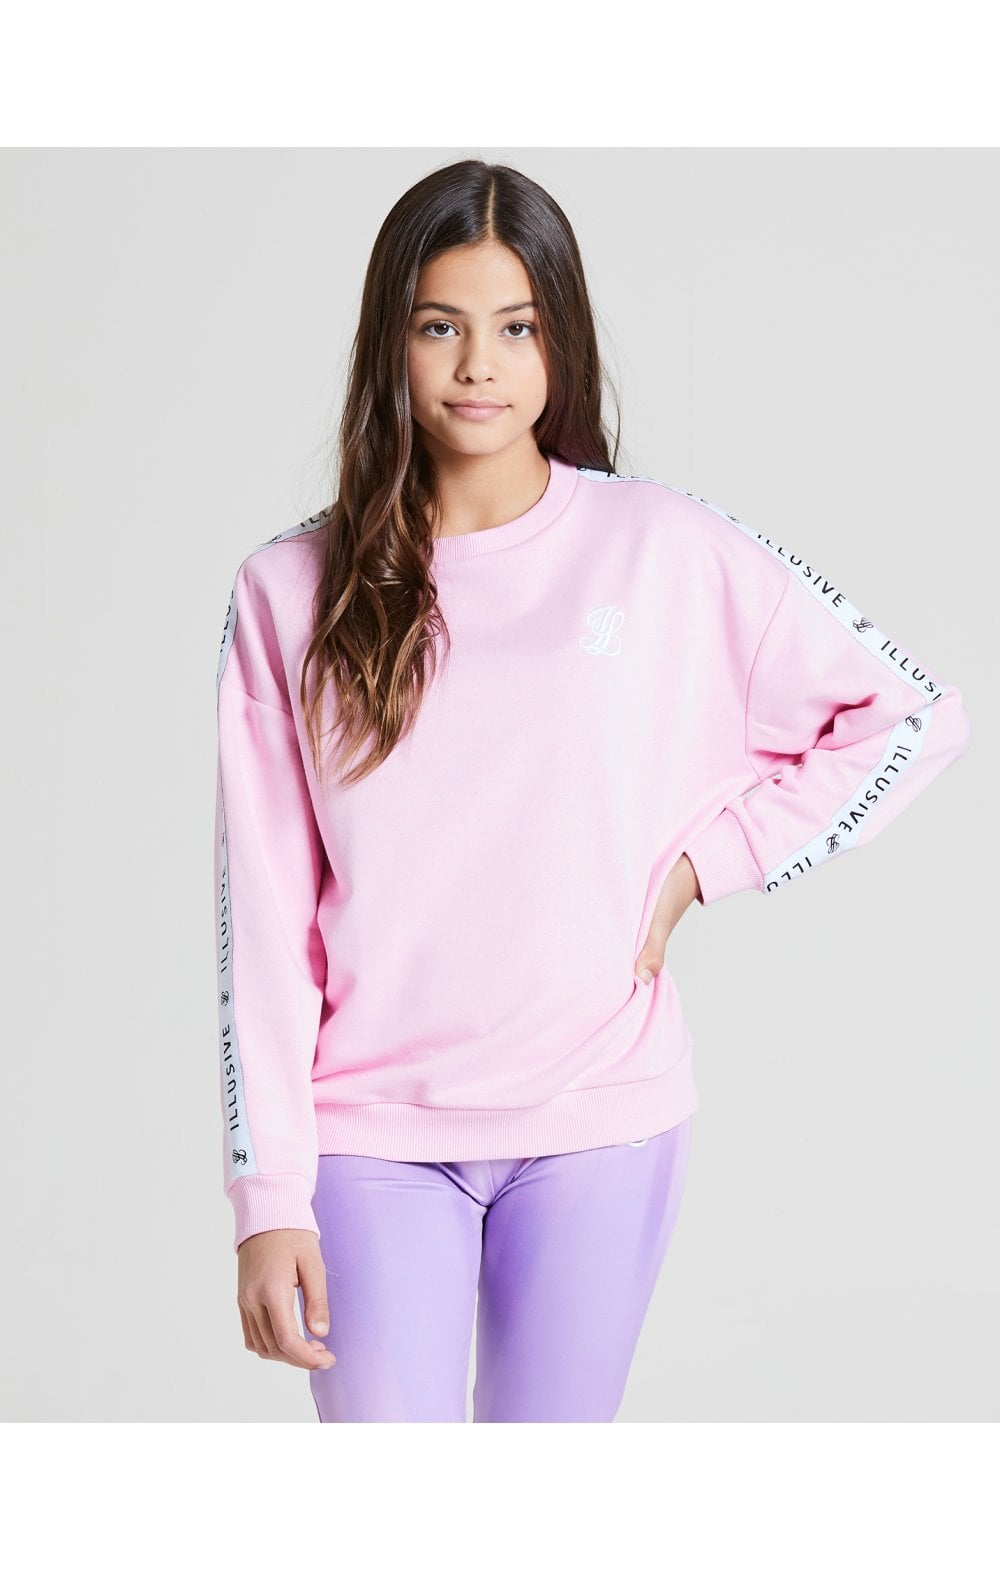 Illusive London Crew Neck Sweater - Pink (1)